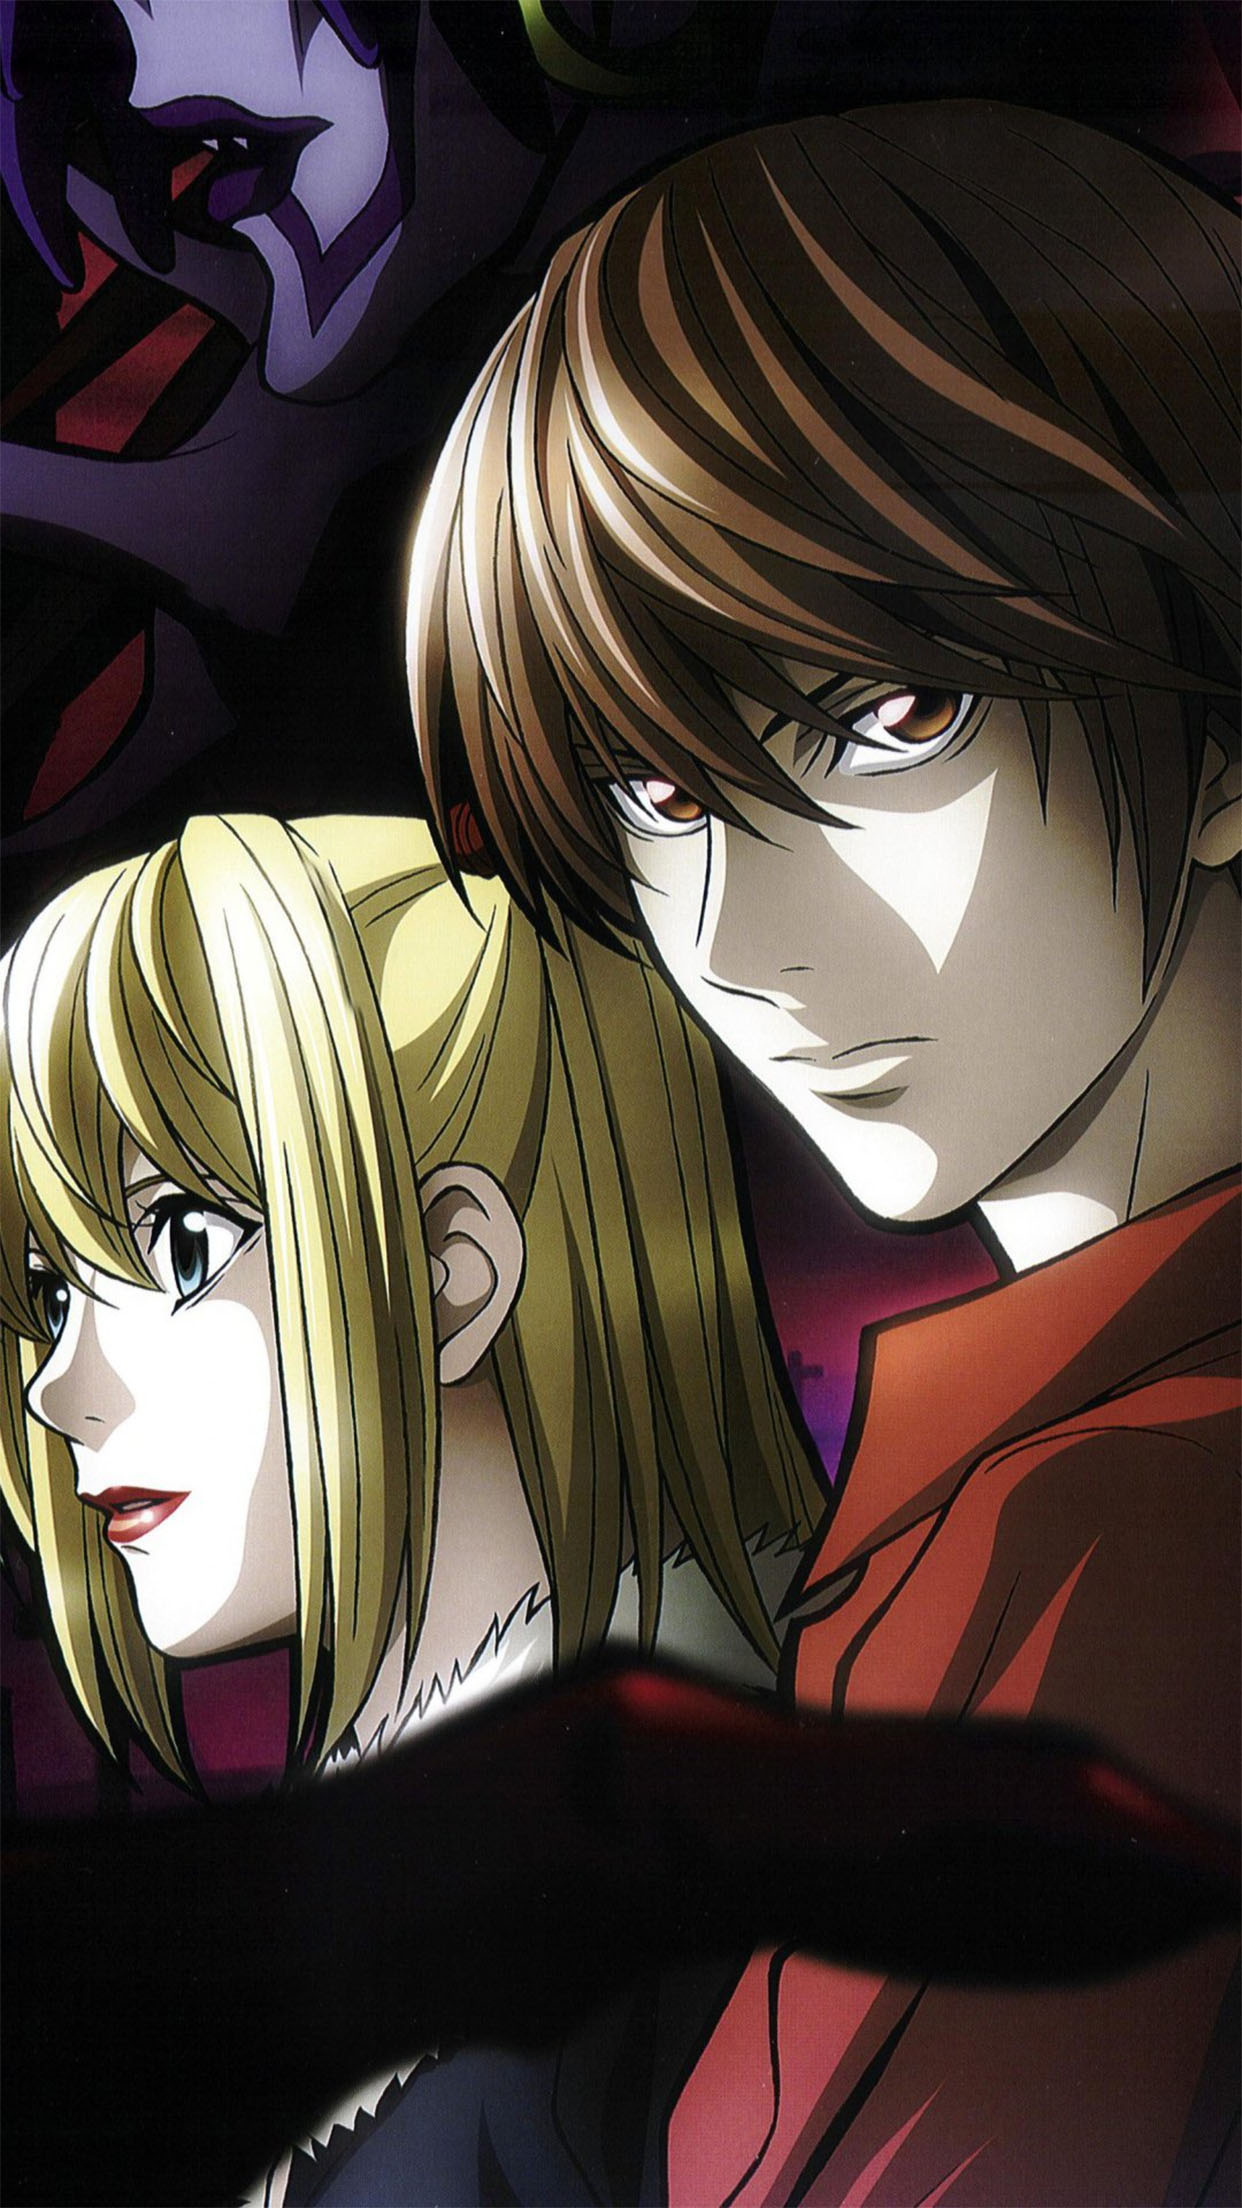 Misa Amane And Light Yagami Wallpaper For Iphone X 8 7 6